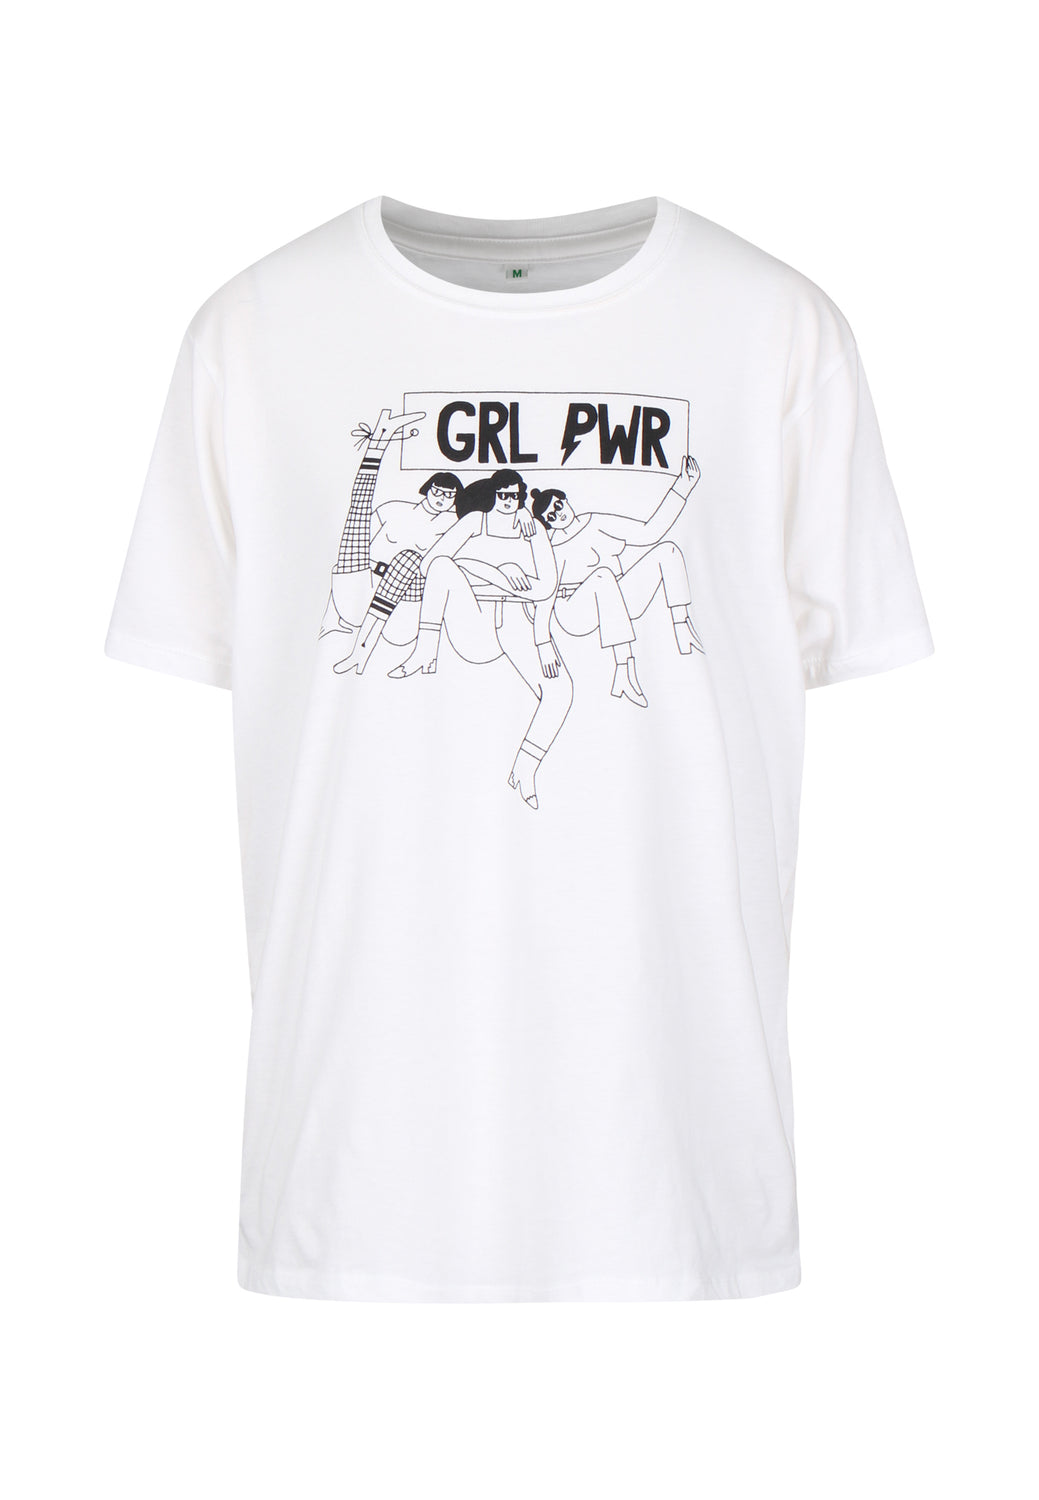 Women's Organic Cotton GRL PWR Artist Collaboration T-Shirt - Monkee Genes Organic Jeans Denim - Women's T-Shirts Monkee Genes Official  Monkee Genes Official